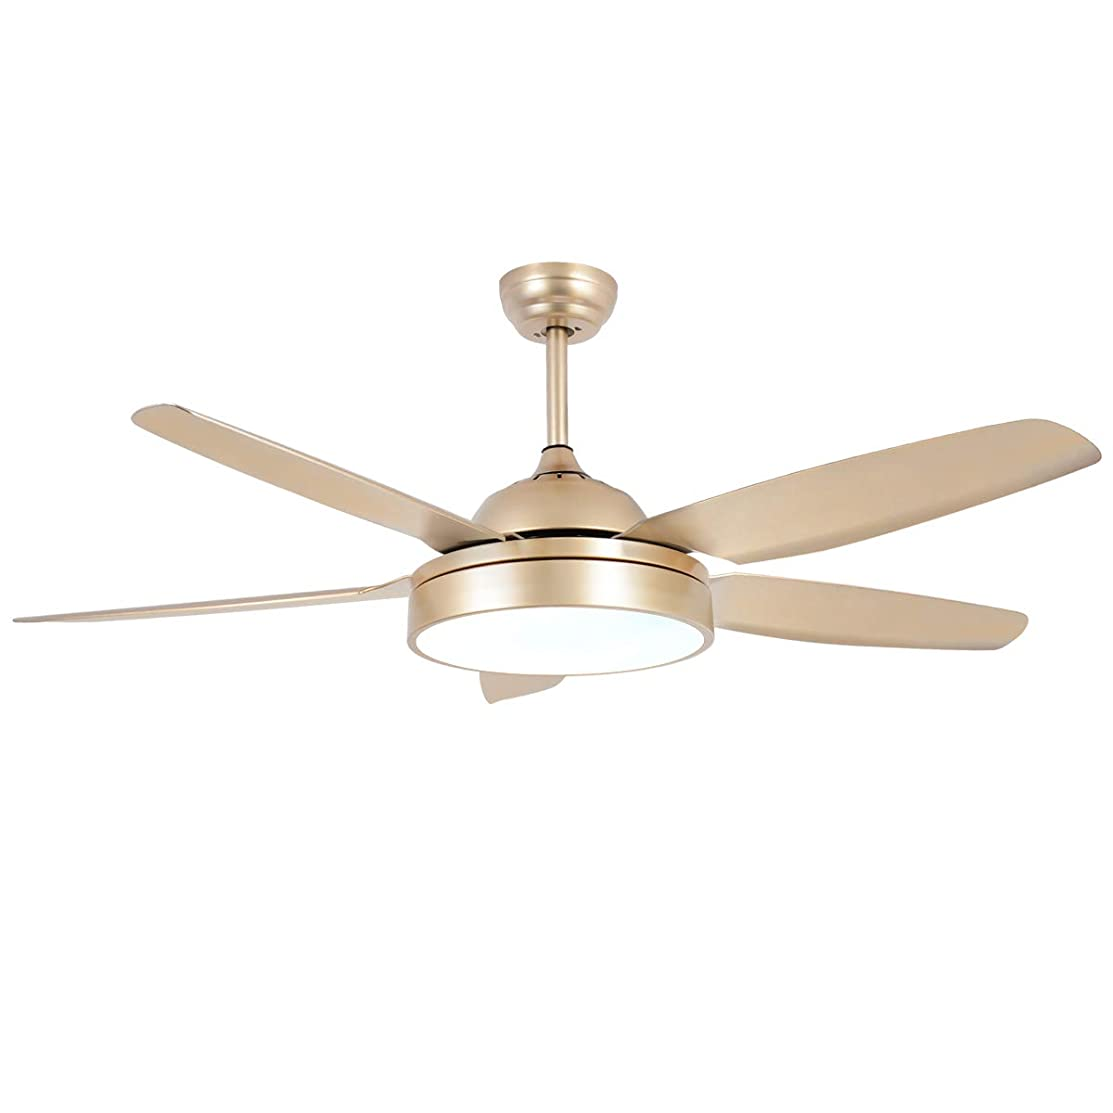 Ceiling Fan Chandelier with LED Light and 5 Blades Champagne Remote Control for Home Decoration Living Room Bedroom 52 Inch